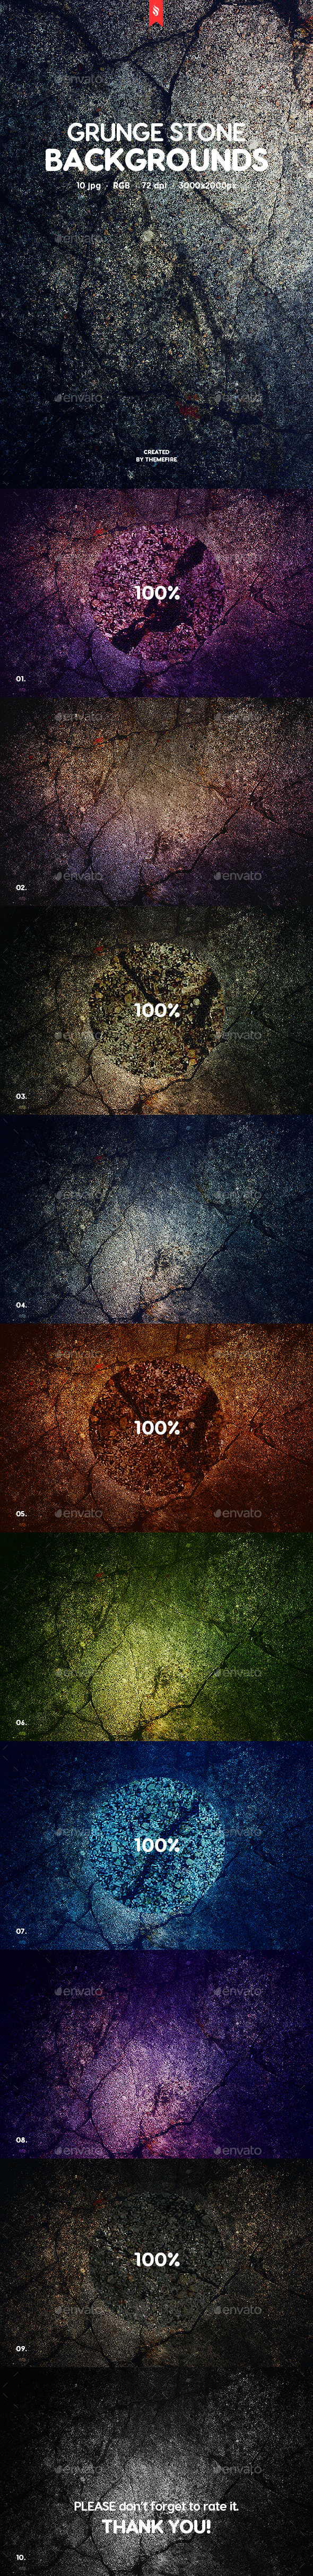 Grunge Stone Backgrounds - Urban Backgrounds